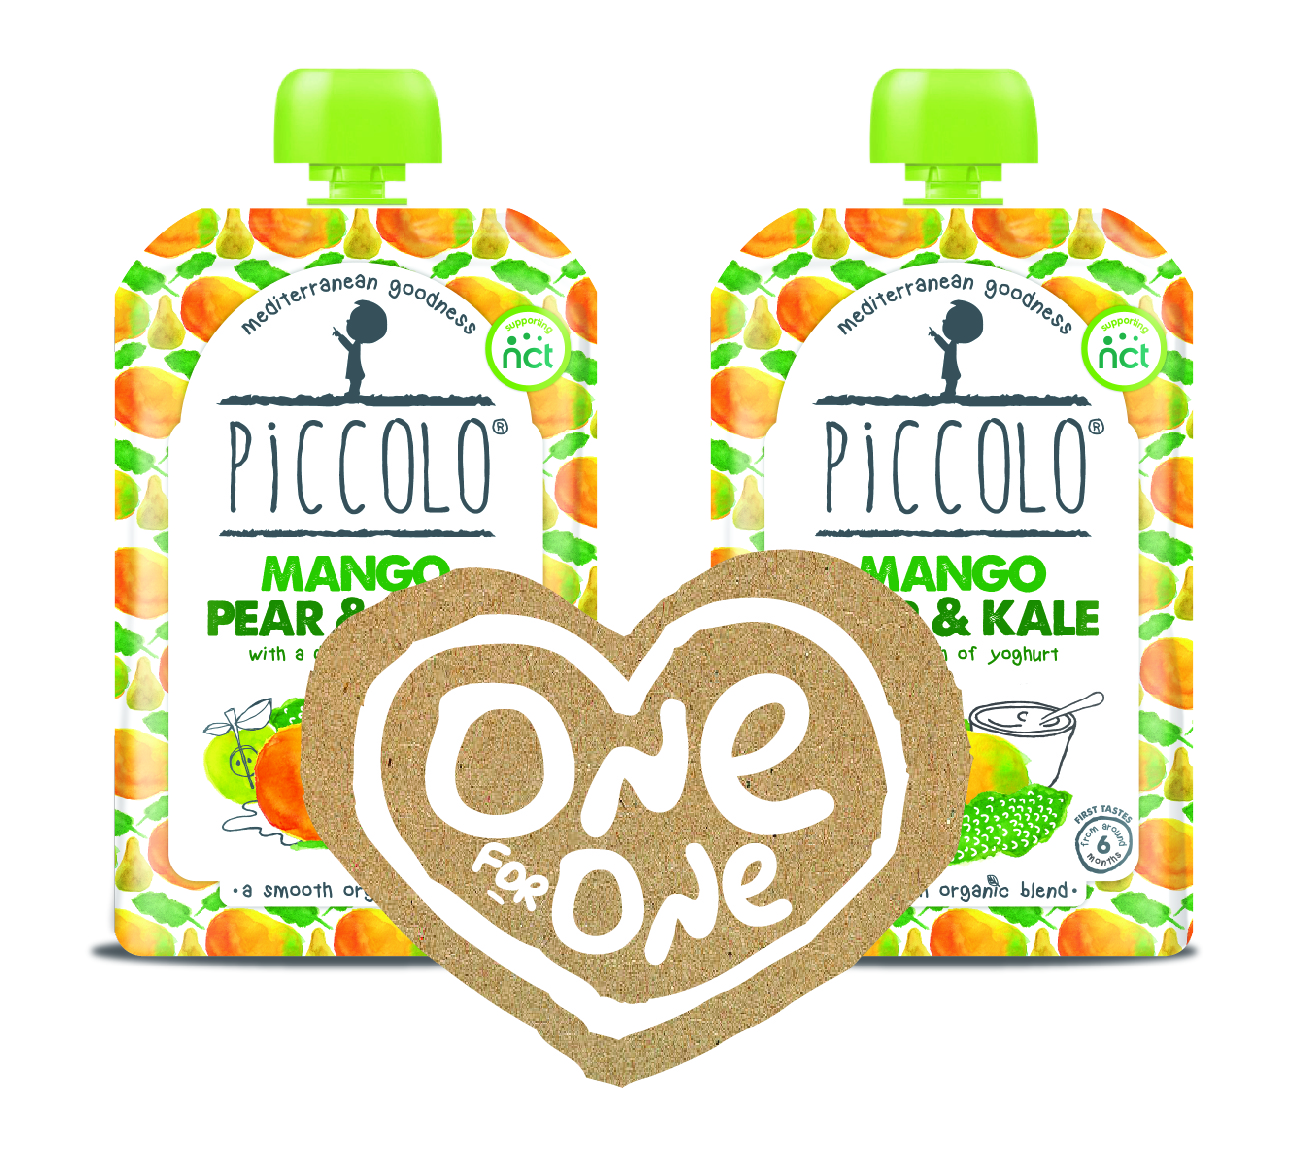 Piccolo launches One for One campaign – help vulnerable families and WIN a month's supply of Piccolo pouches